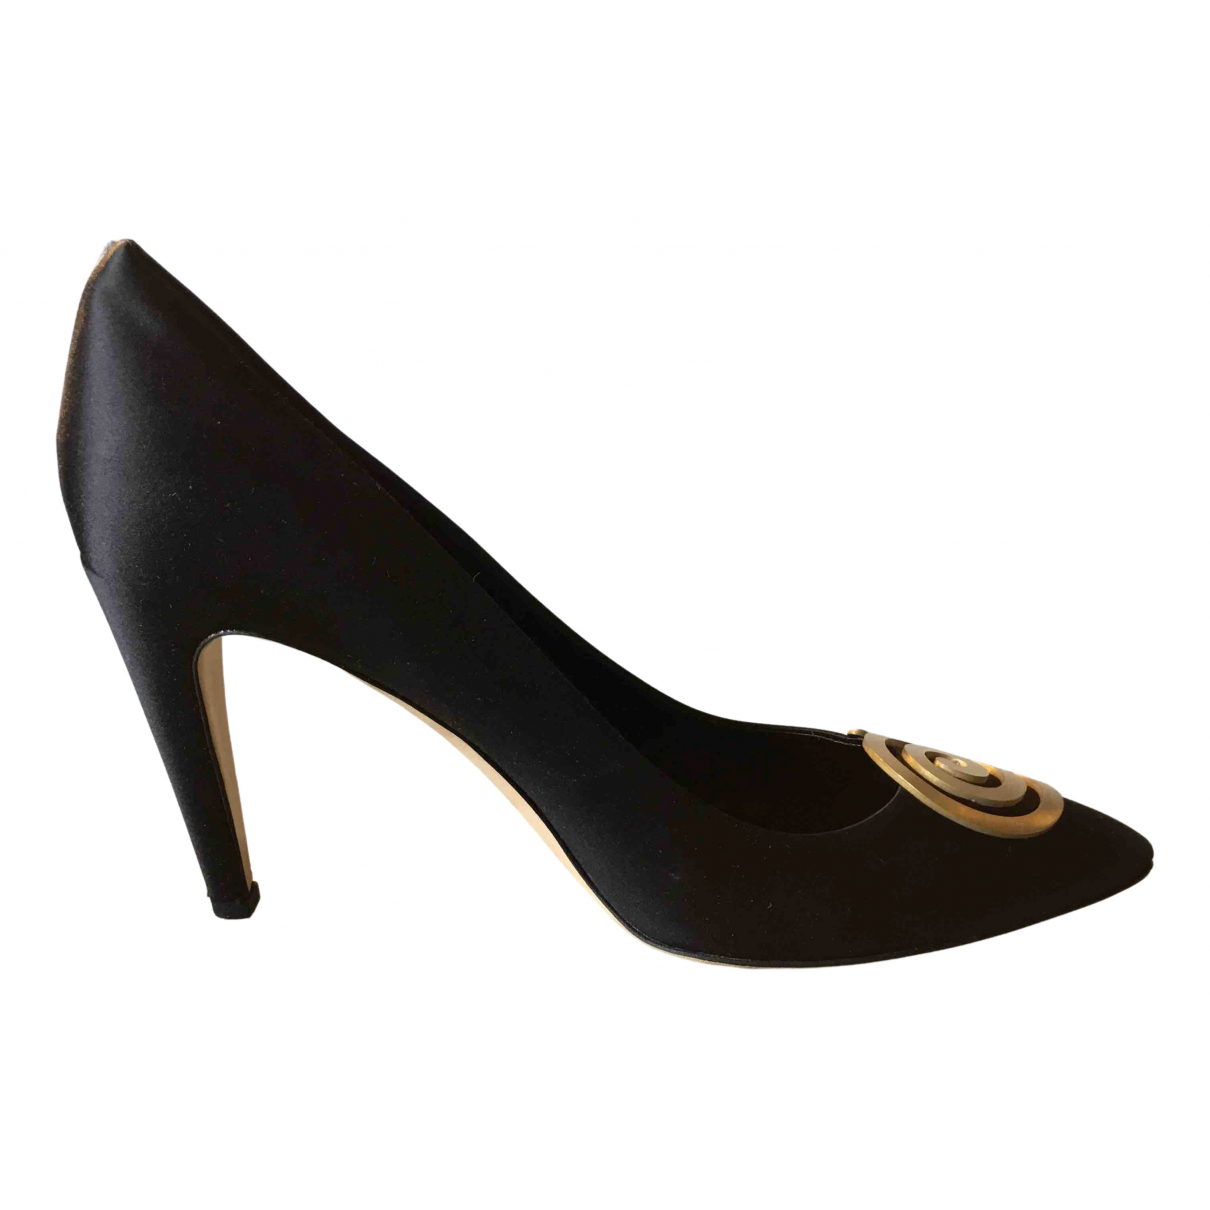 Tibi \N Pumps in  Schwarz Leinen